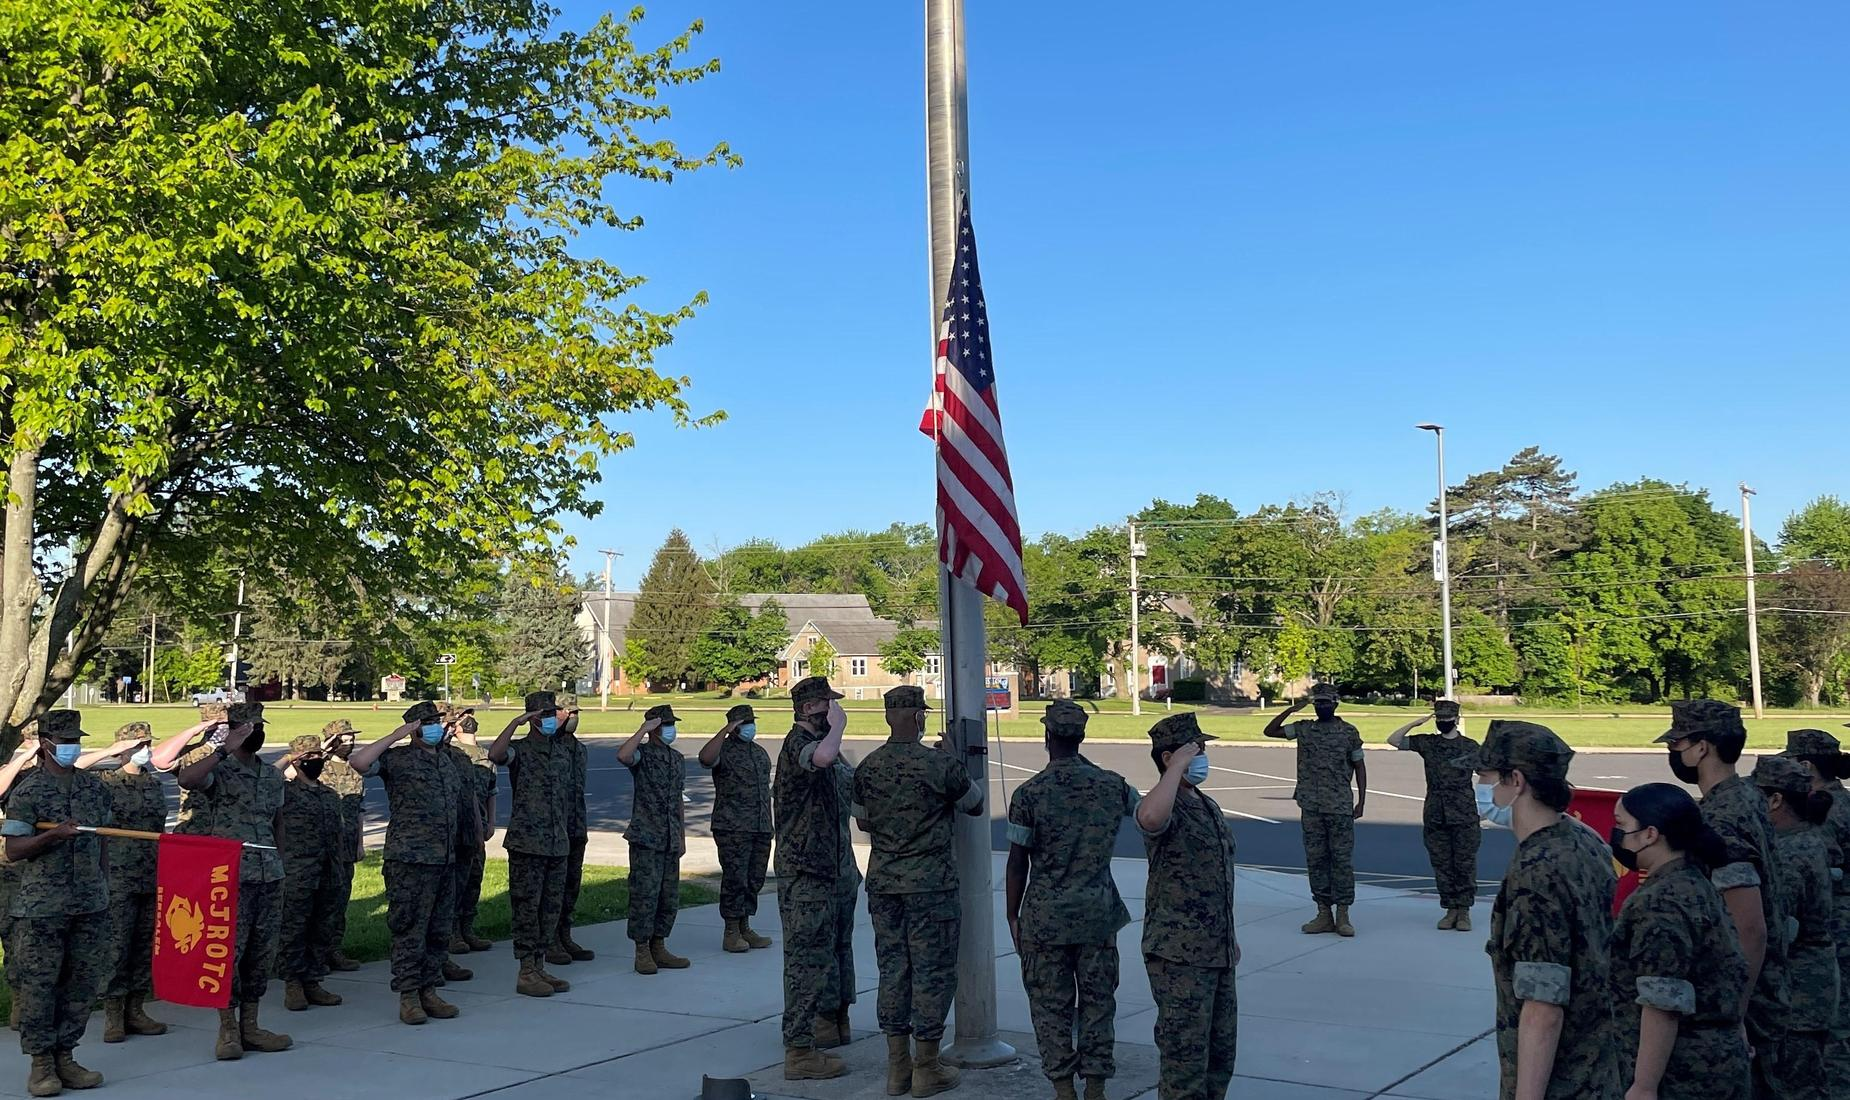 Bensalem High School MCJROTC Cadets salute the American Flag as they raise it early in the morning